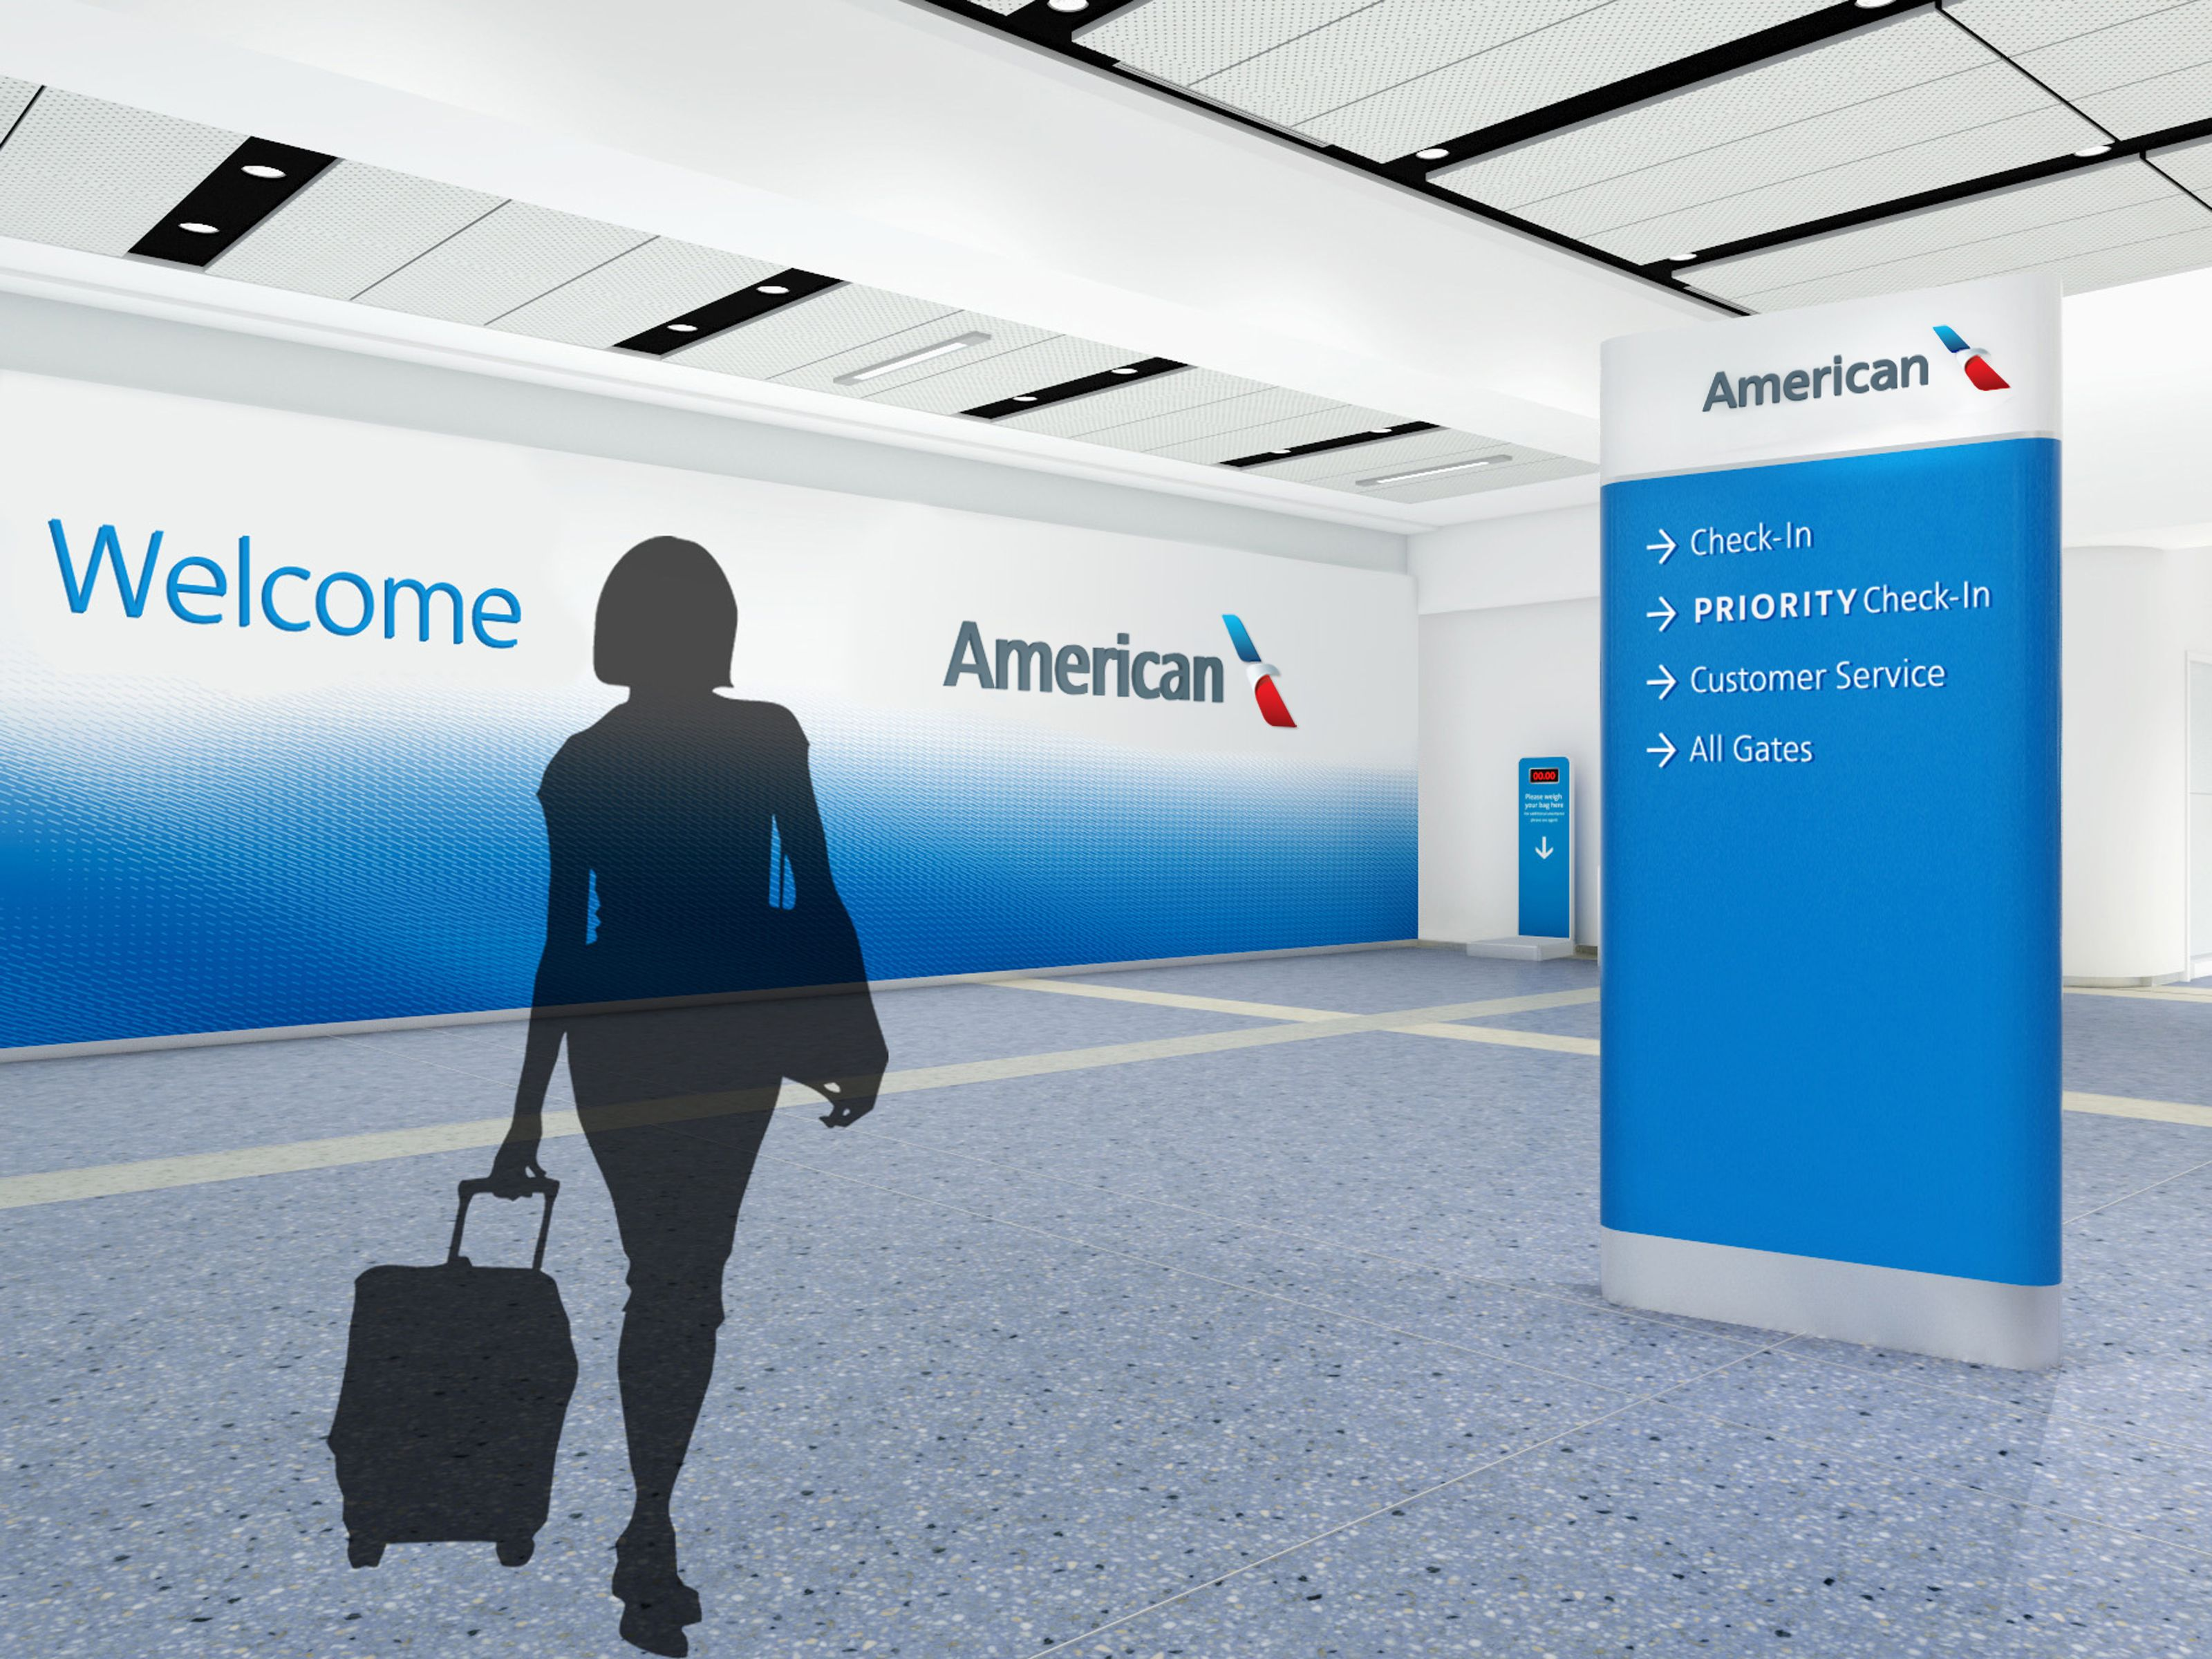 American Airlines Check In Rendering Futurebrand